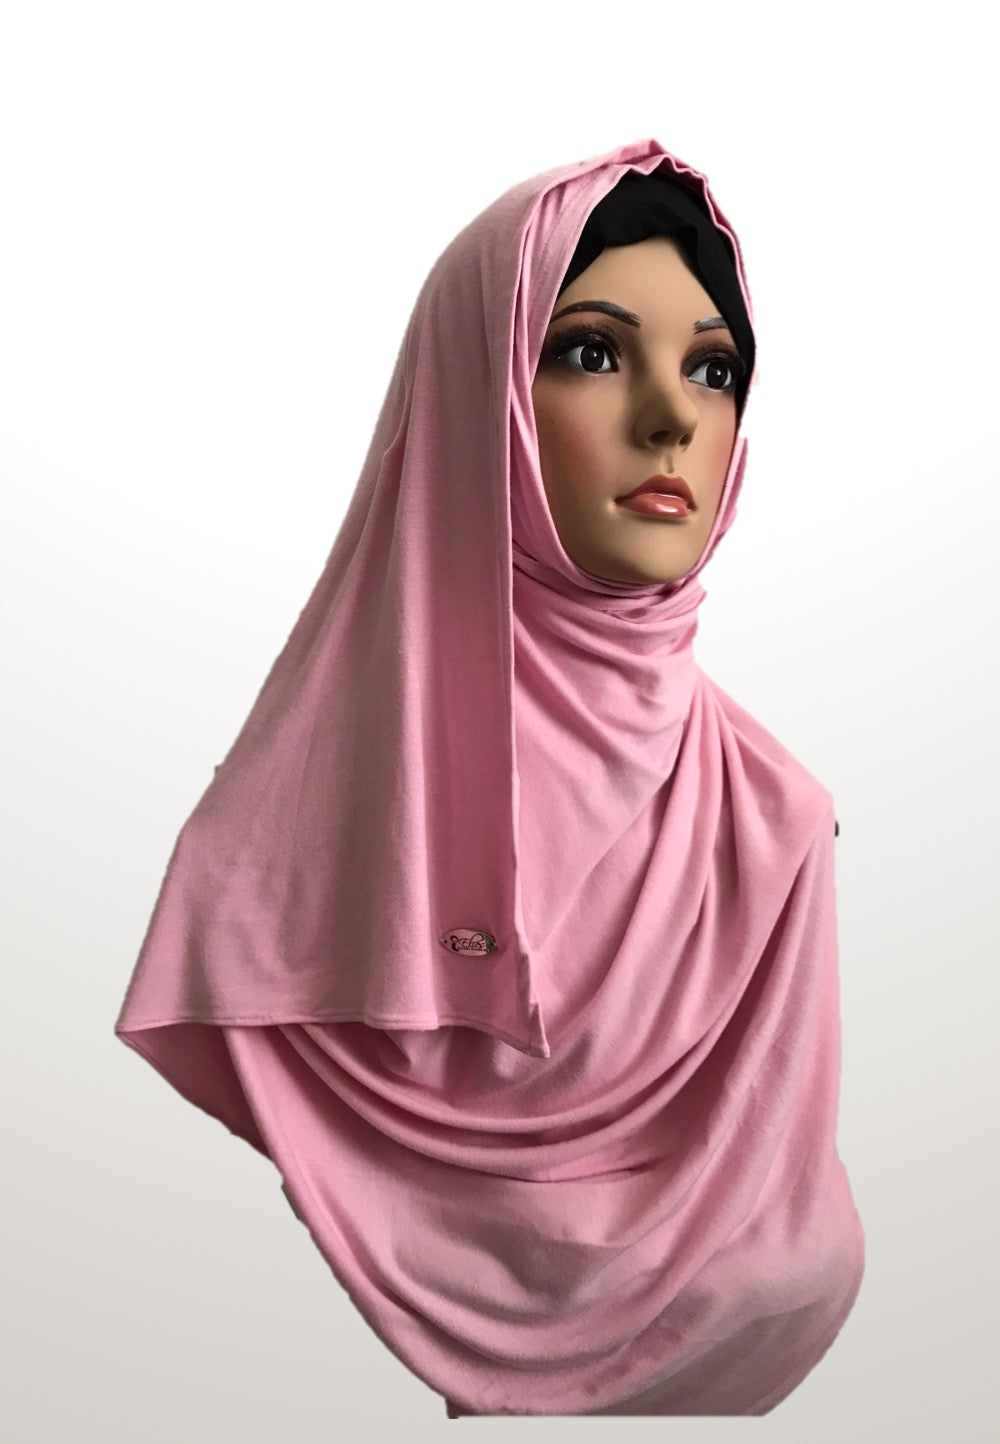 Cherry blossom pink stretchy (COT) instant hijab SF